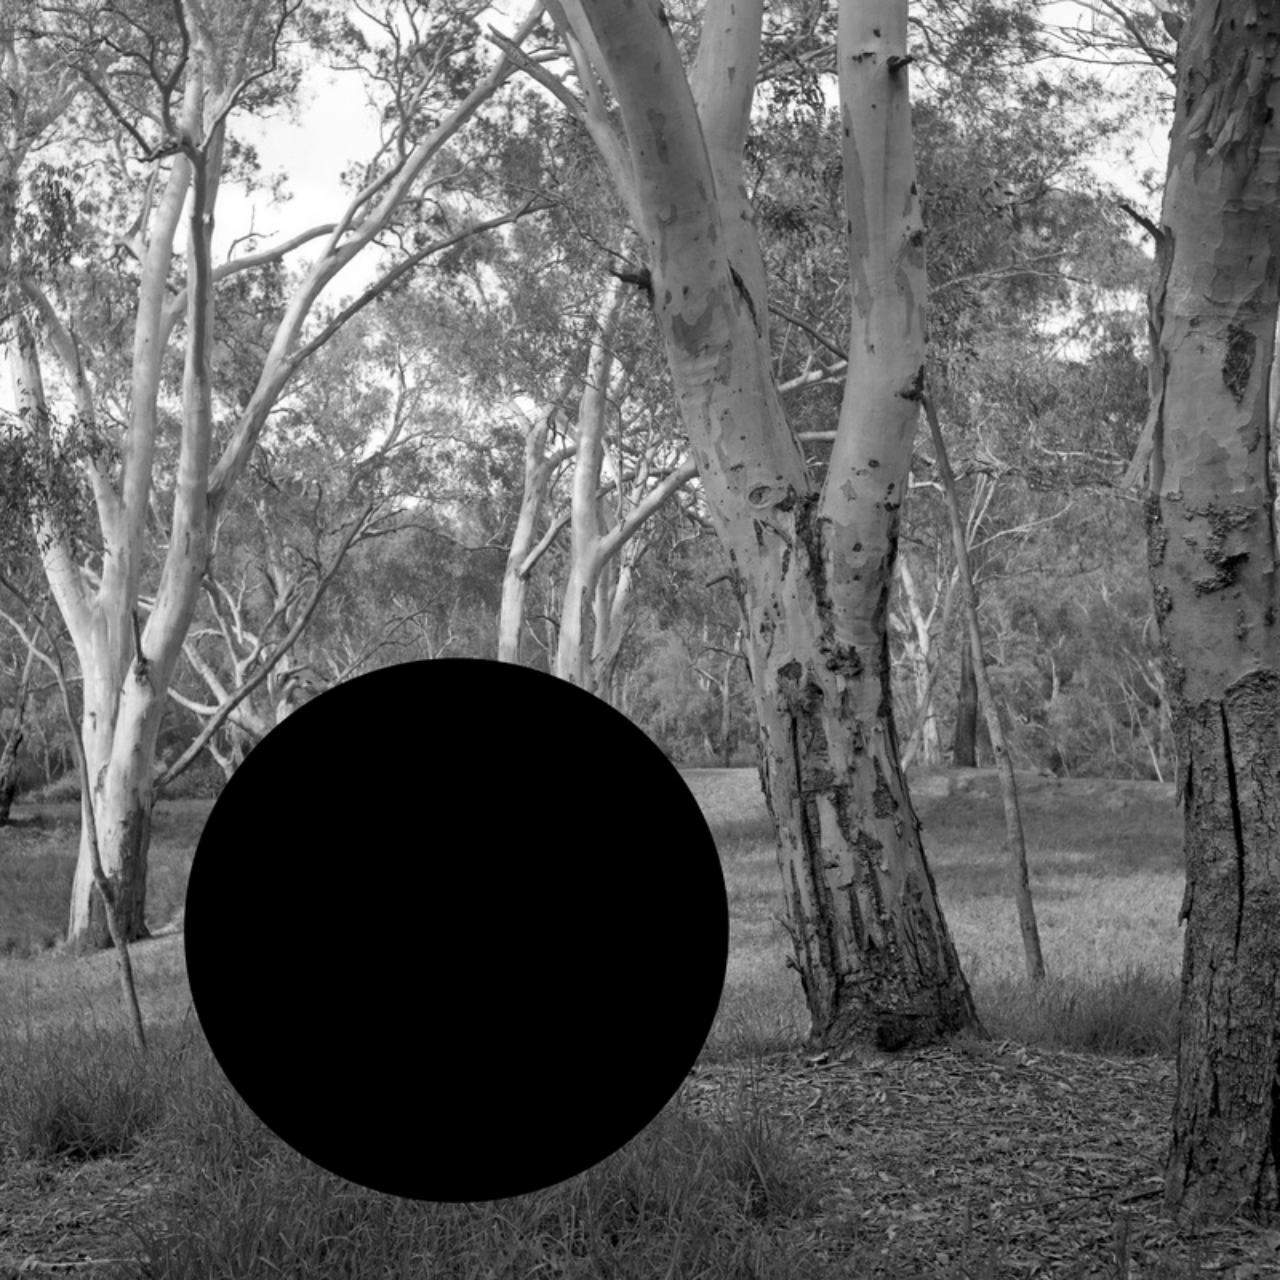 James Tylor, (Erased Scenes) From an Untouched Landscape #5 (2014), Artbank collection.